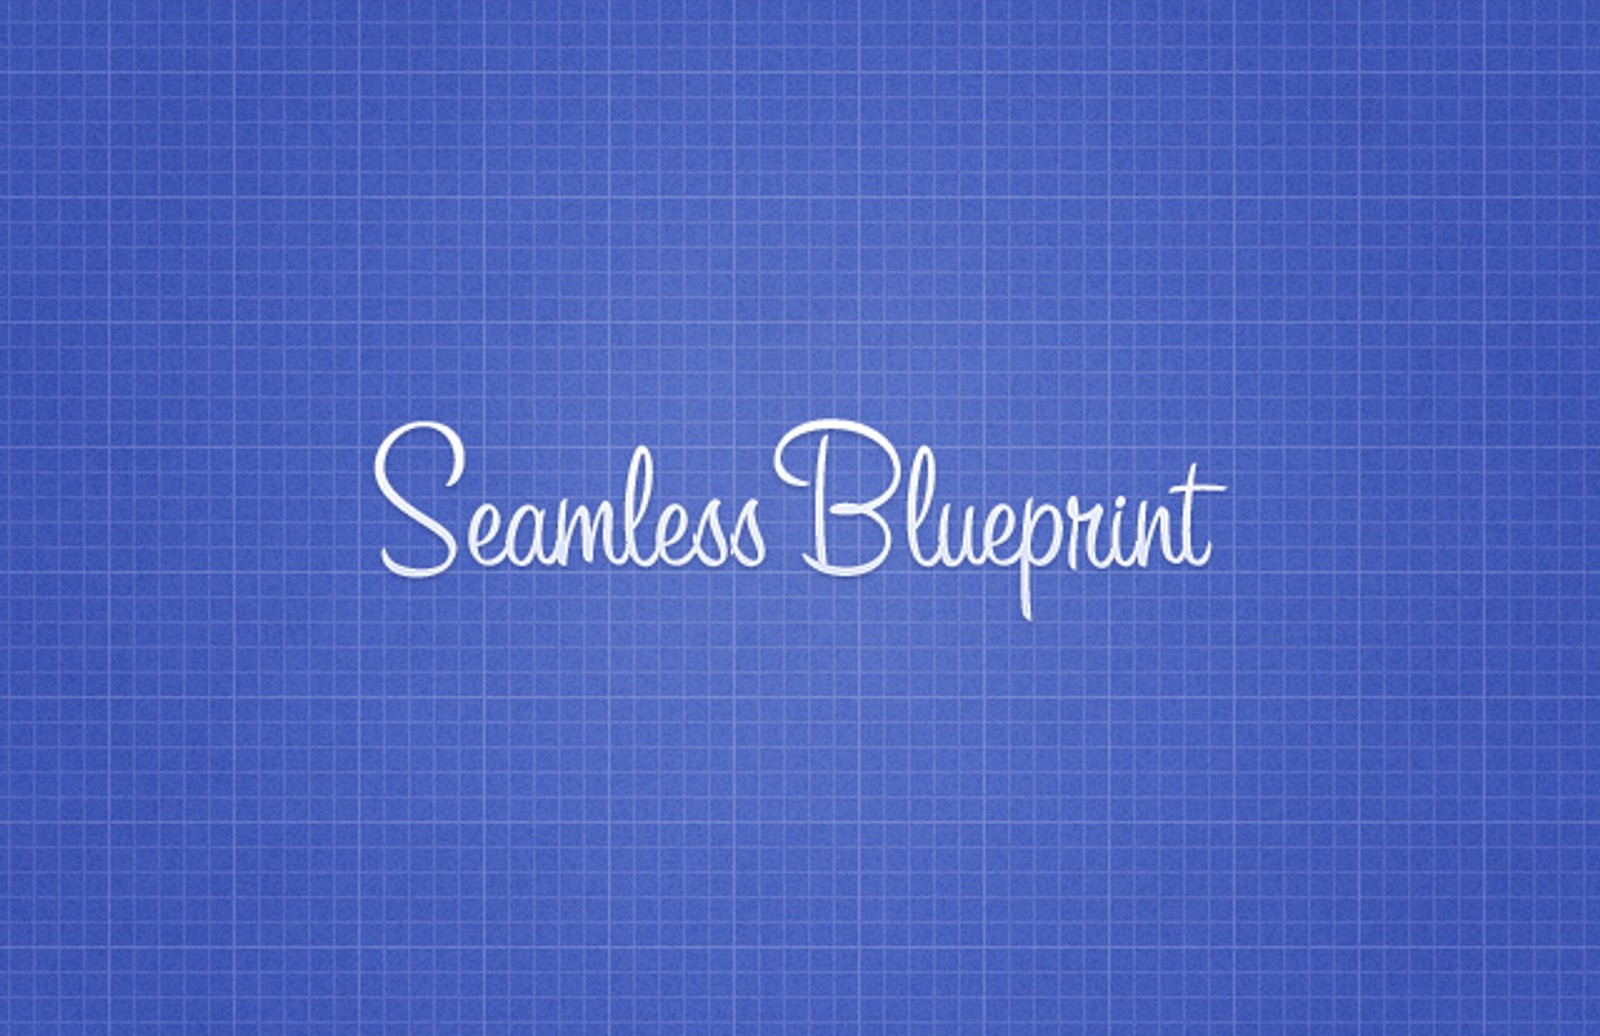 Seamless blueprint textures medialoot seamless blueprint textures preview1 malvernweather Images